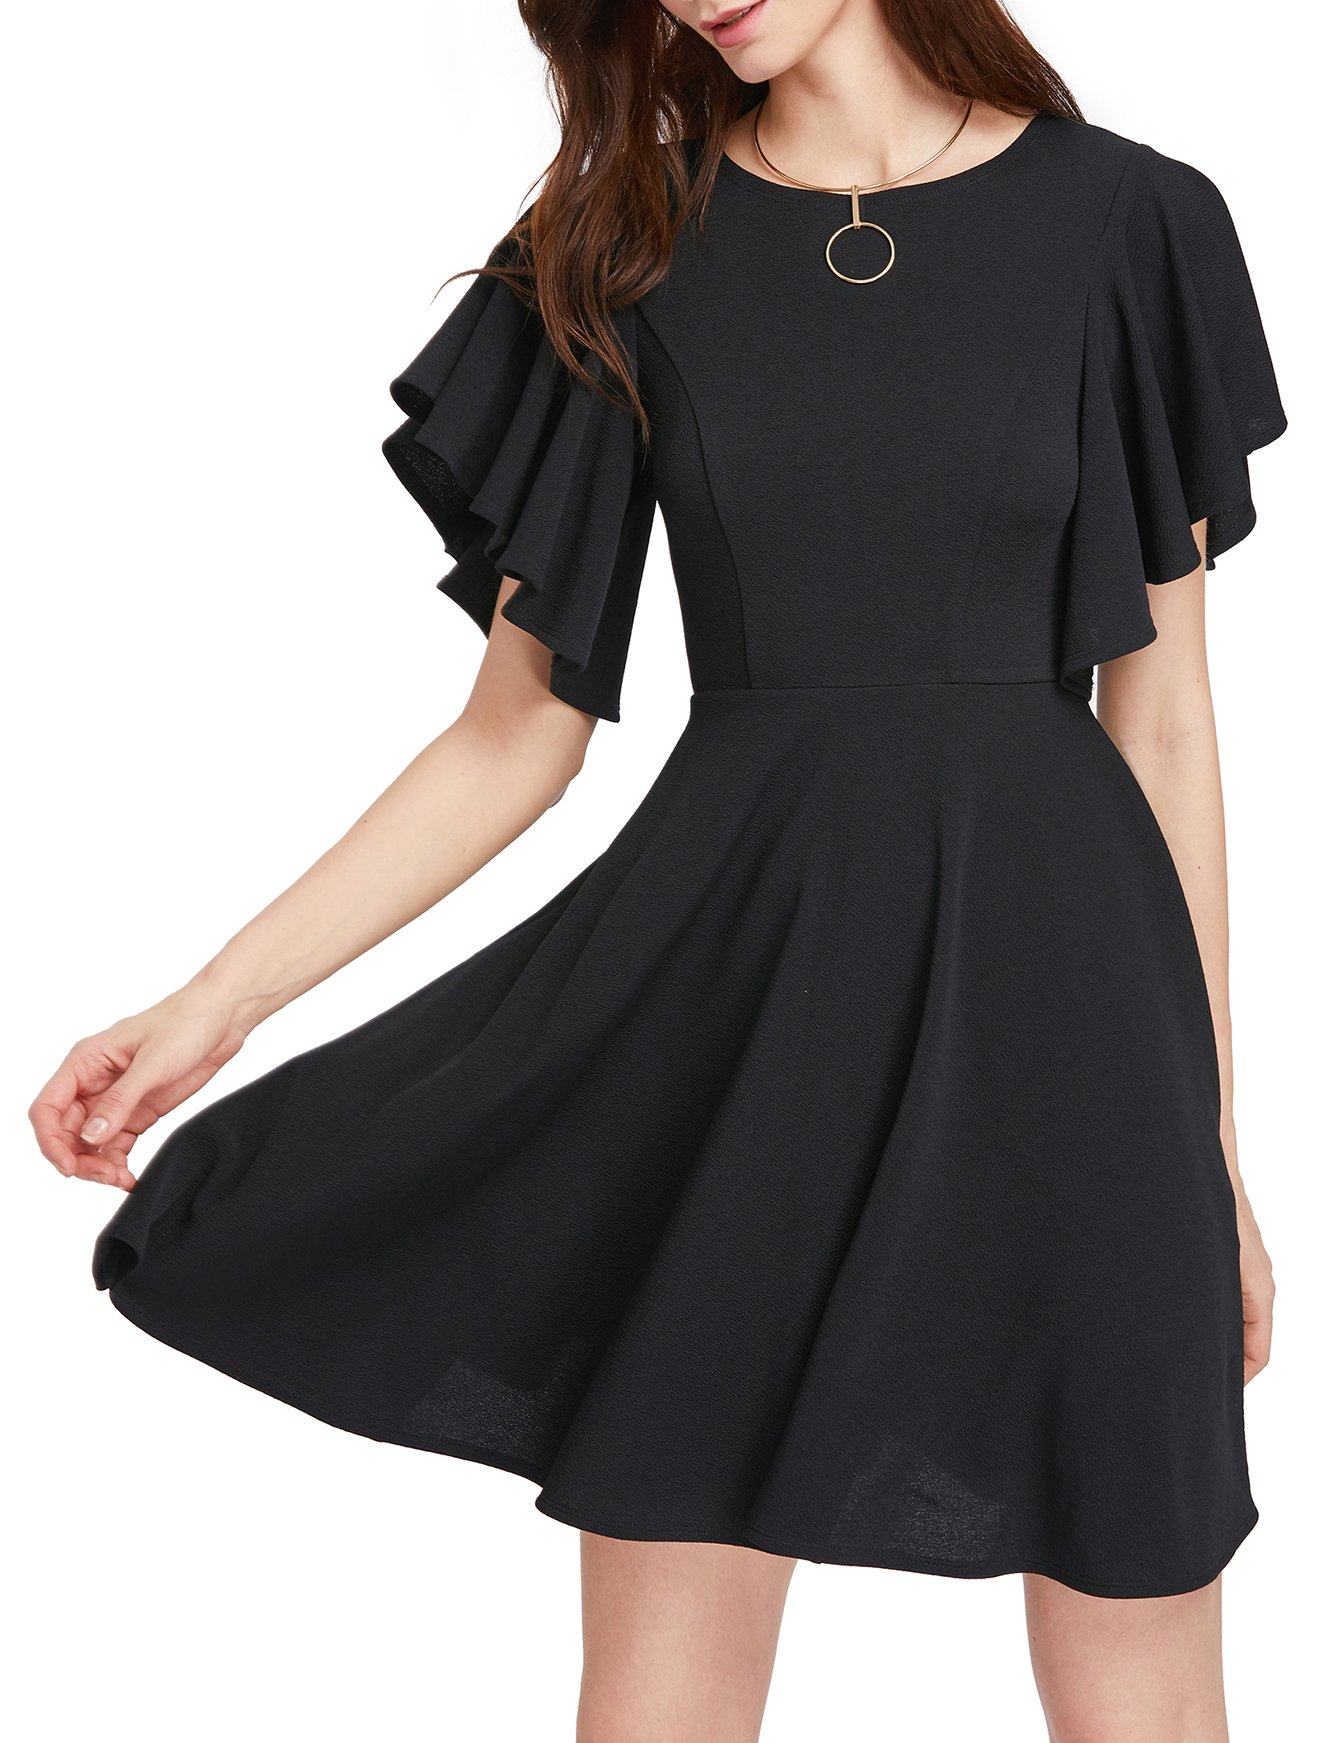 ROMWE Women's Stretchy A Line Swing Flared Skater Cocktail Party Dress Black L by Romwe (Image #1)